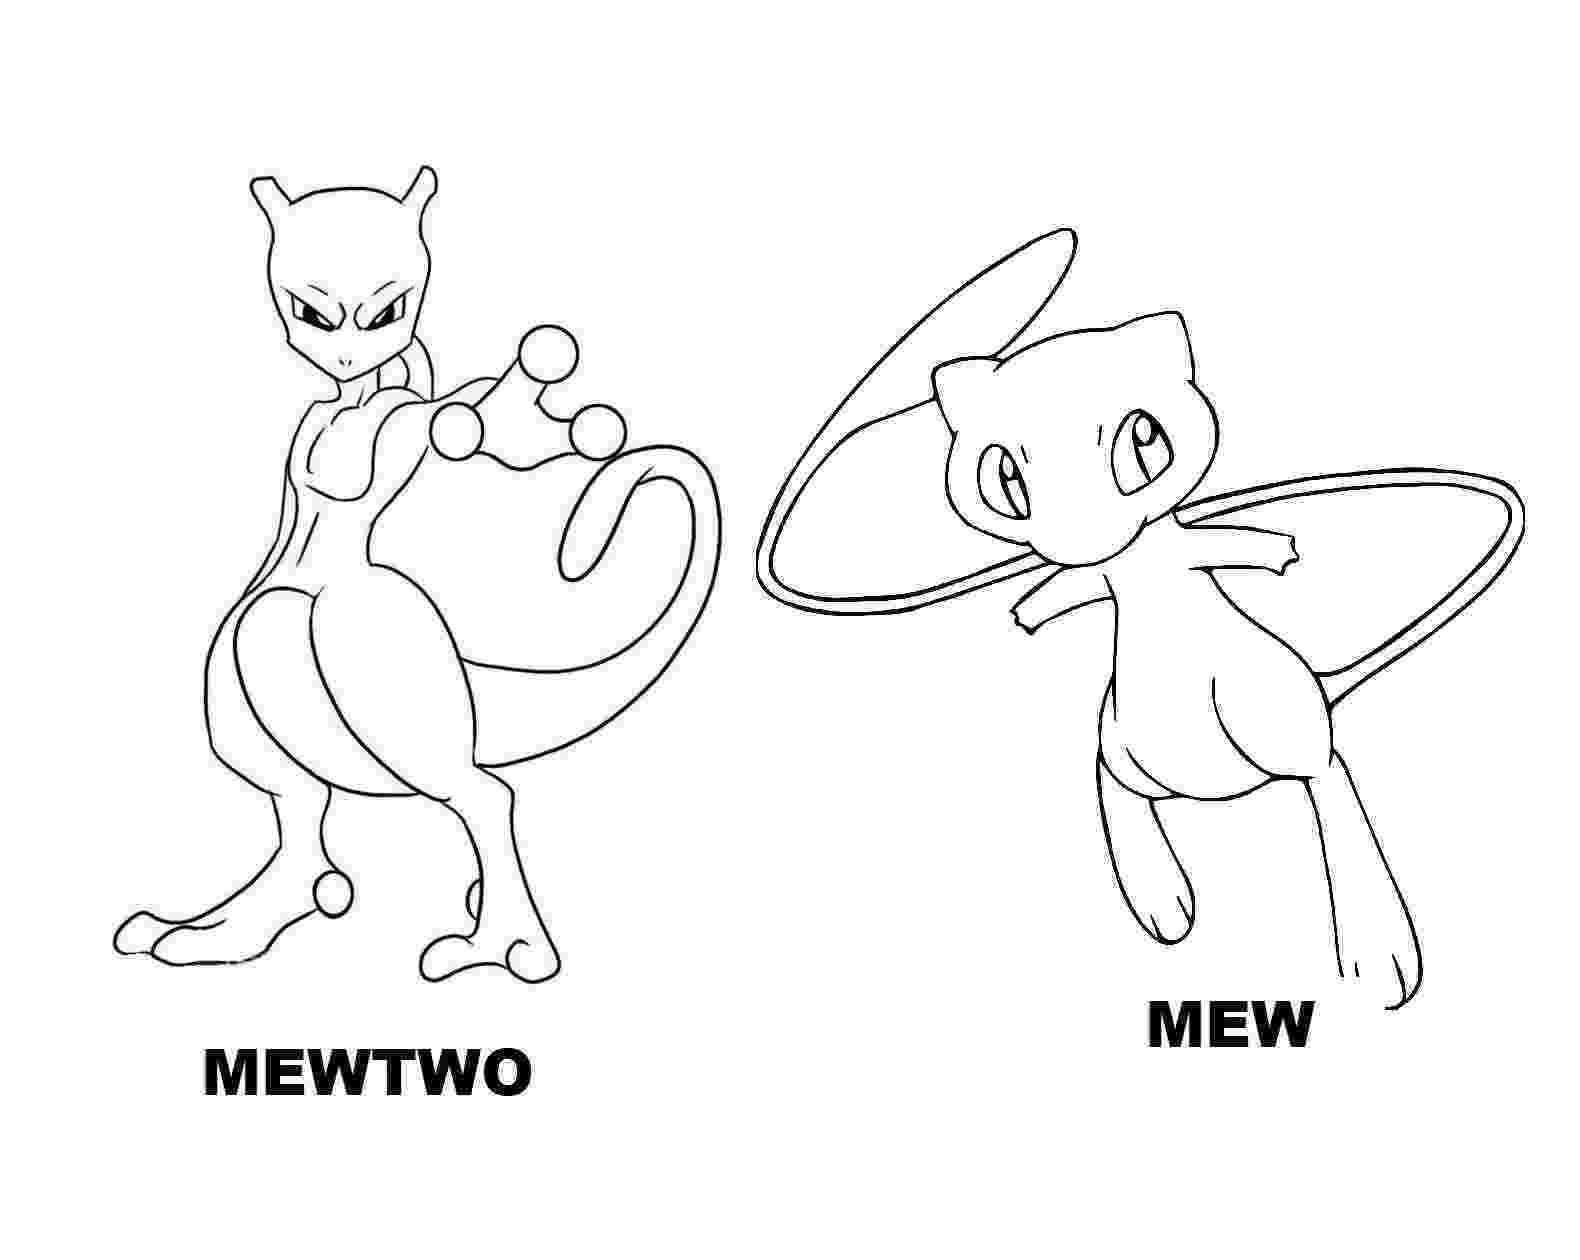 mewtwo coloring pages pokemon mewtwo coloring pages at getcoloringscom free coloring pages mewtwo